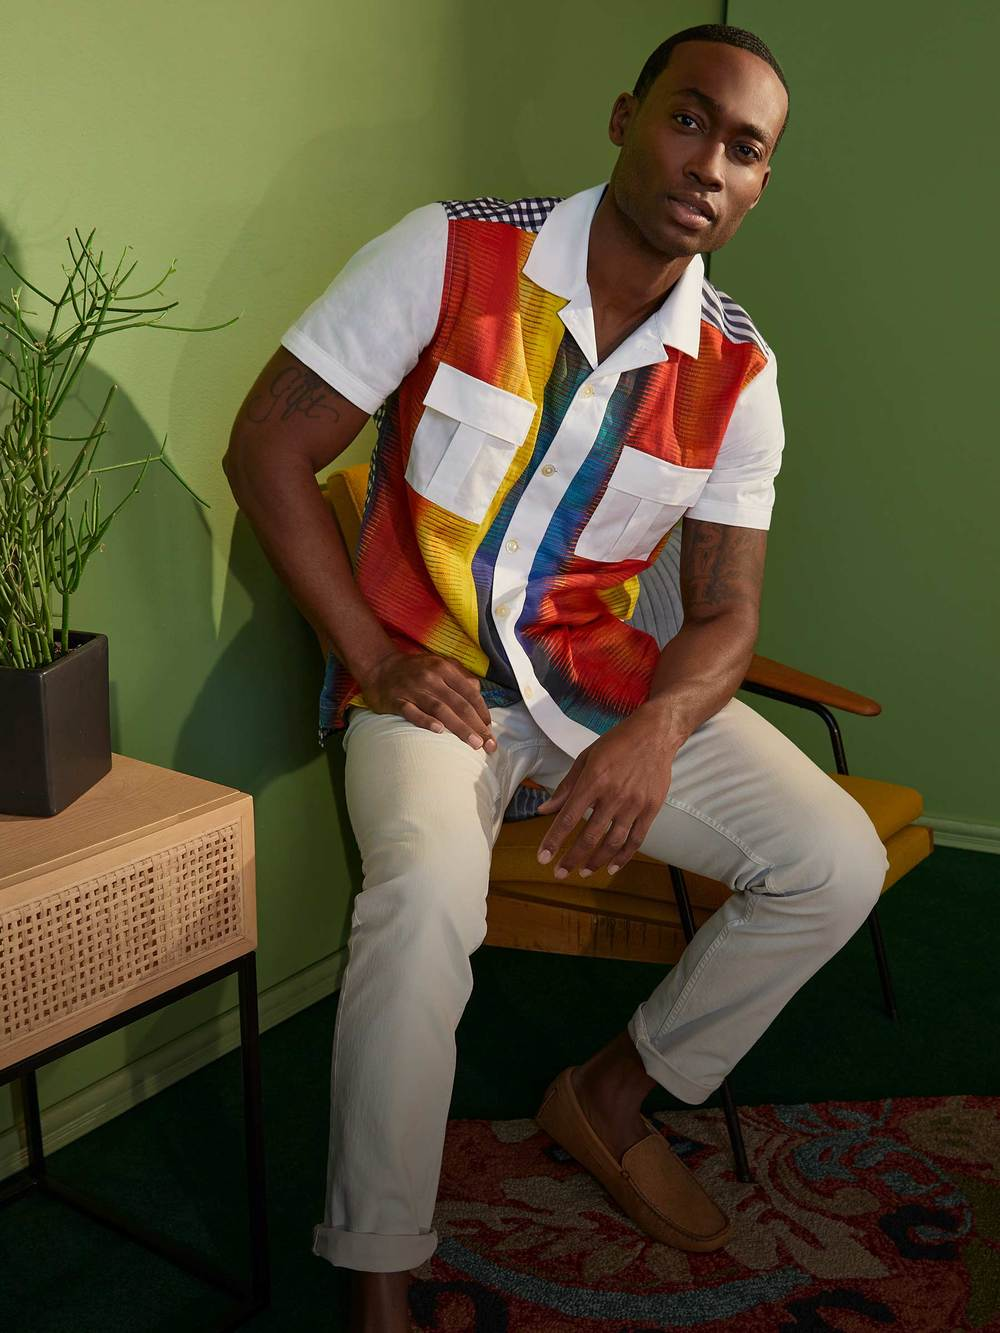 Limited Edition Crossroads Short Sleeved Shirt from the Robert Graham Spring 2021 Collection